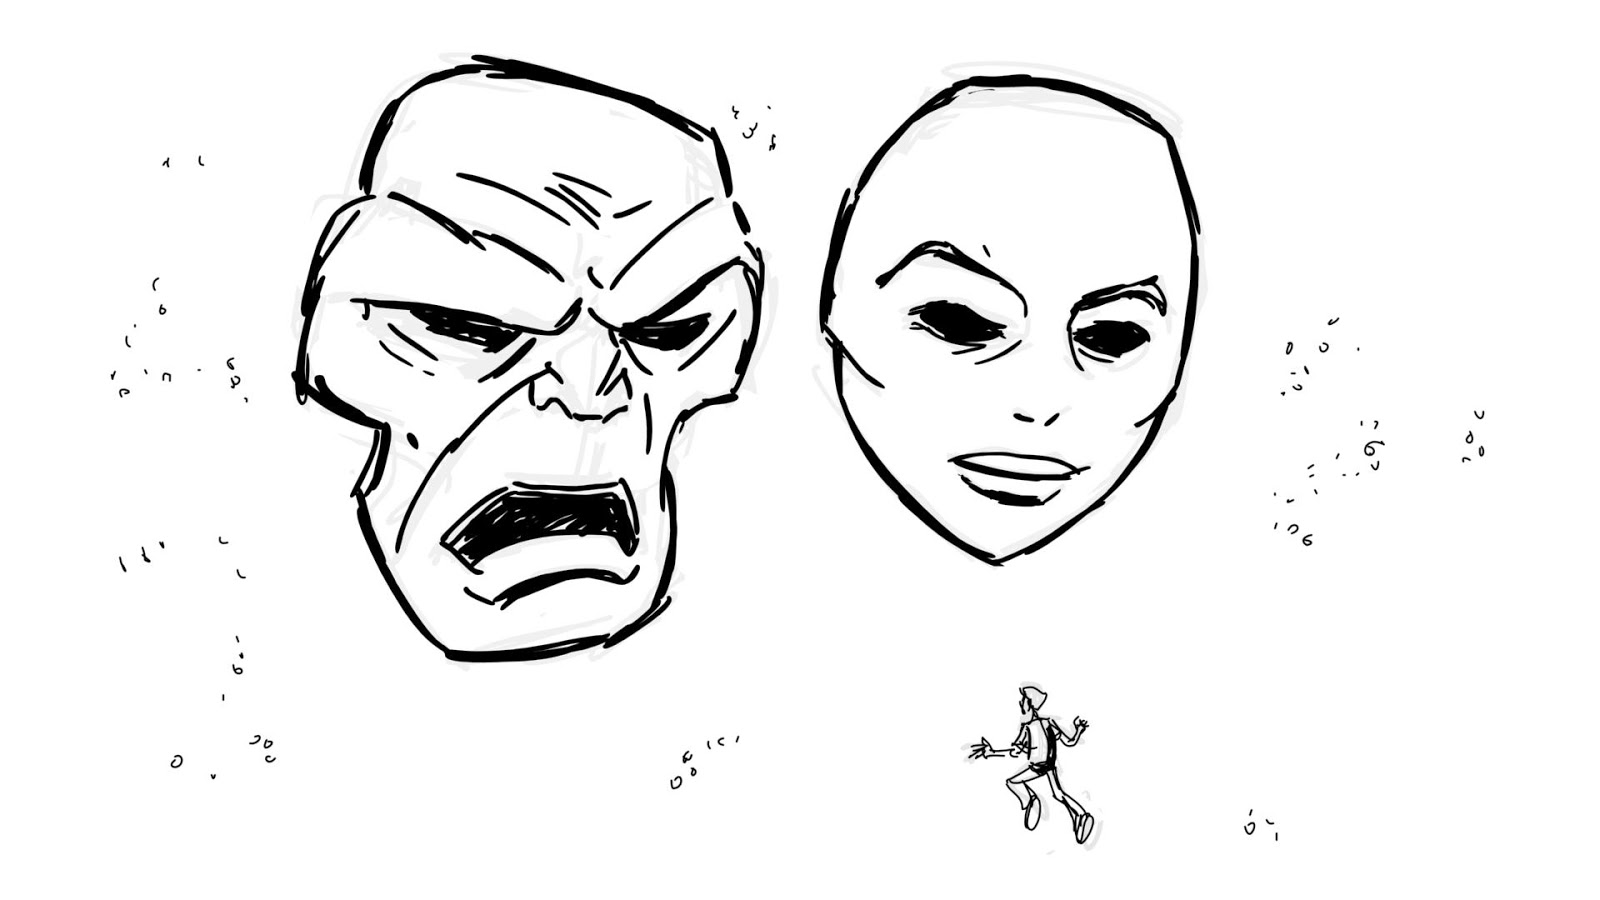 Media Hygiene Ben 10 Omniverse Storyboards